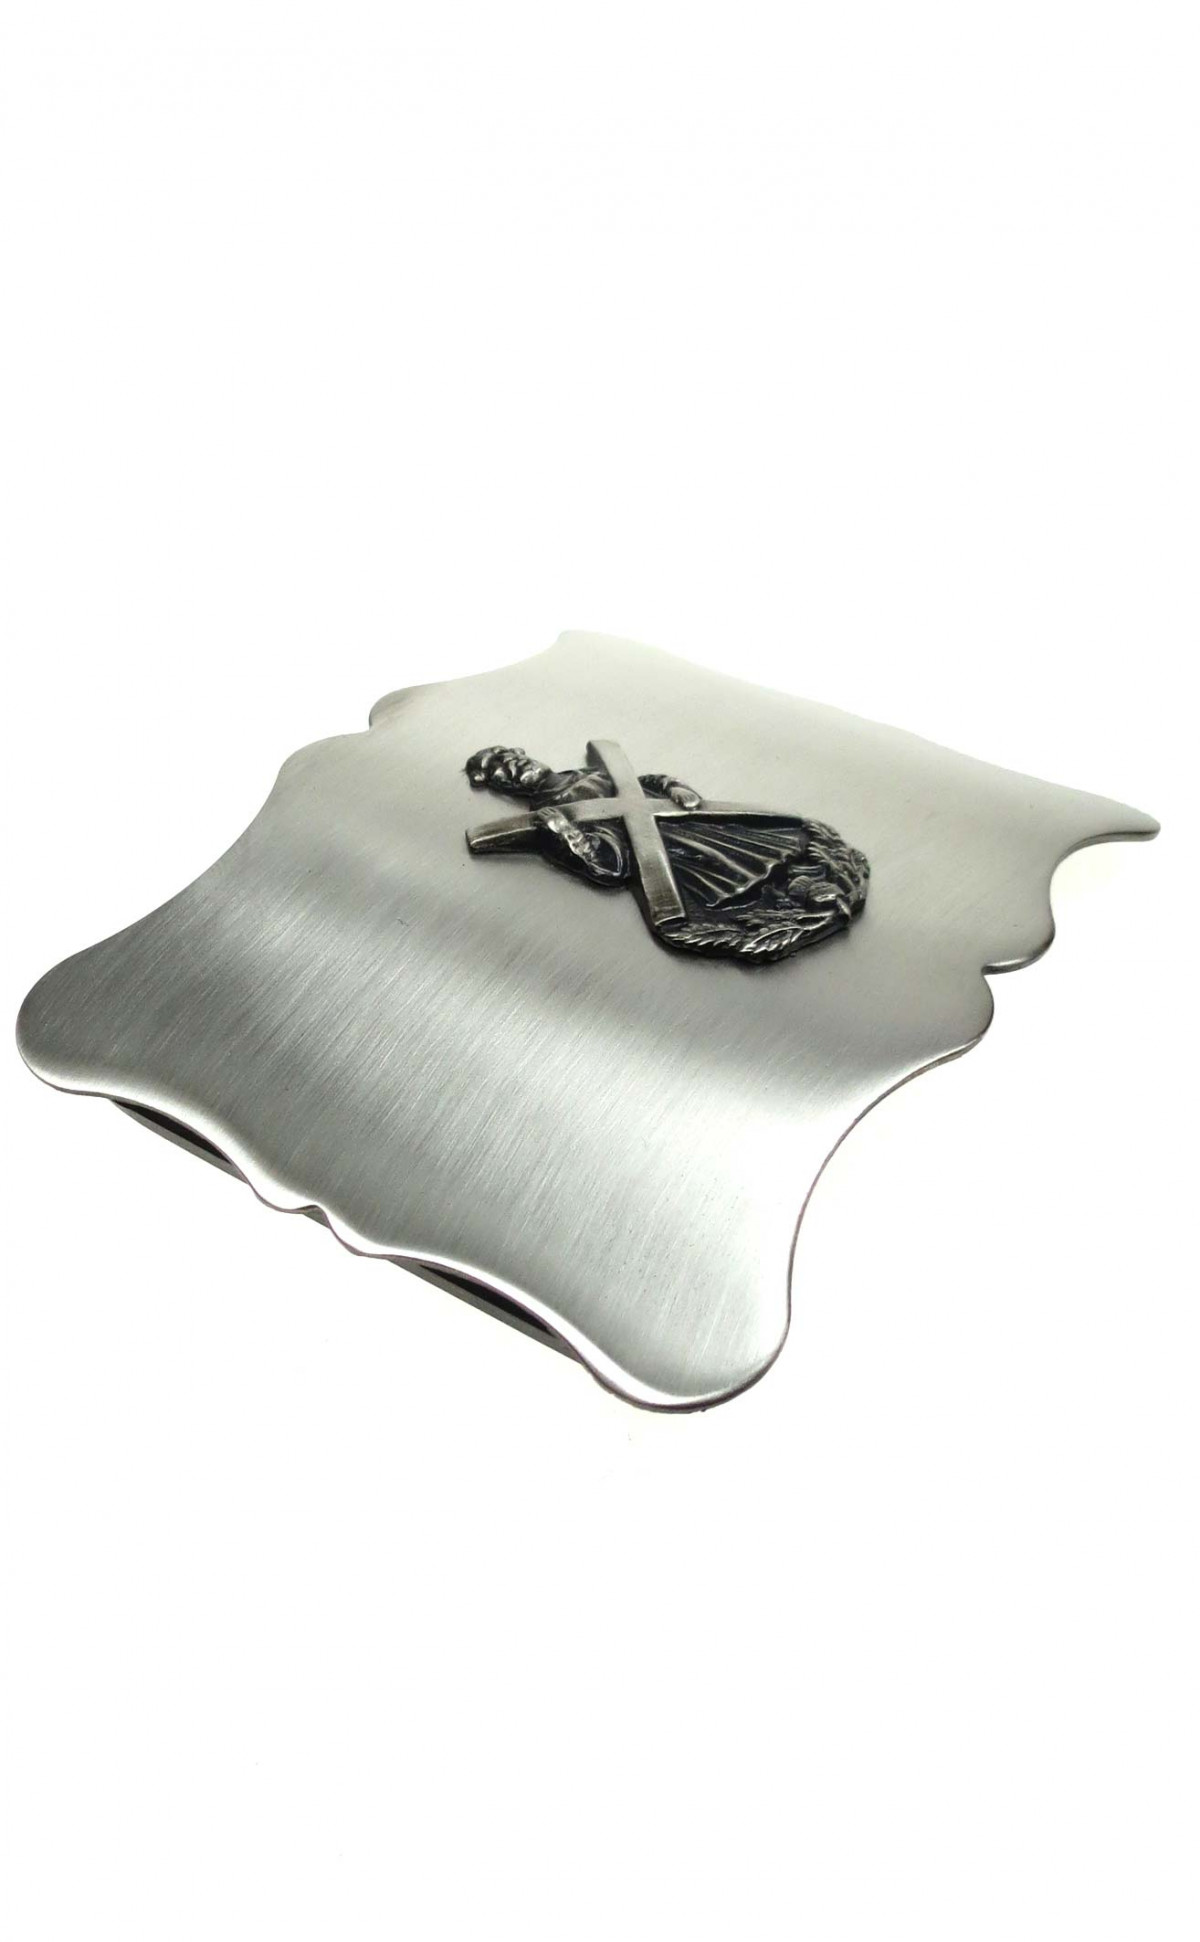 wscot-sr_wscot_buckles_antiqueplain_standrews_2